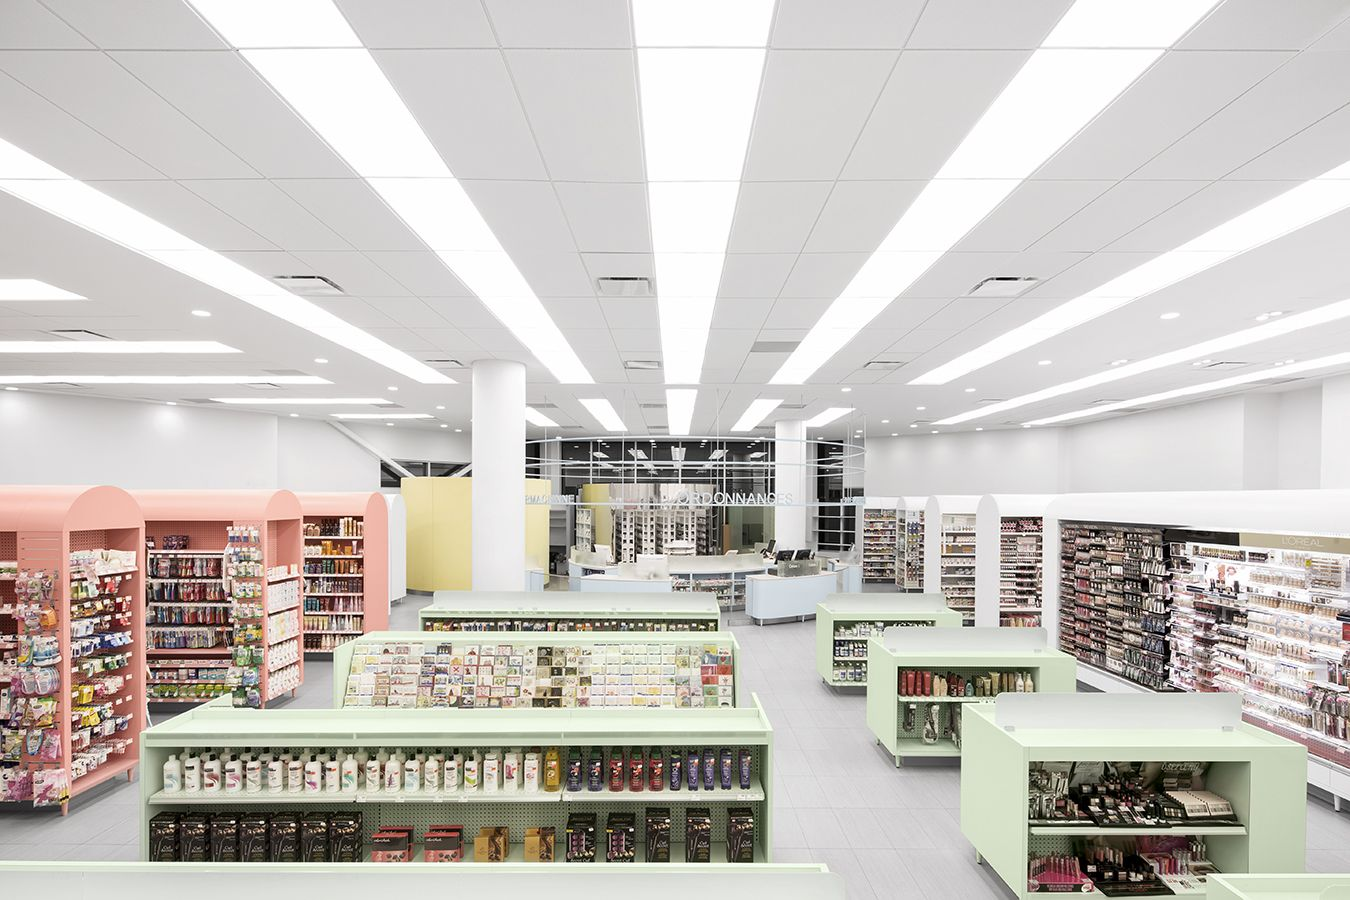 PHARMACIE UNIPRIX KIEU TRUONG Empathetic Colorful And Feng Shui These Elements Have Guided The Pharmacy DesignRetail